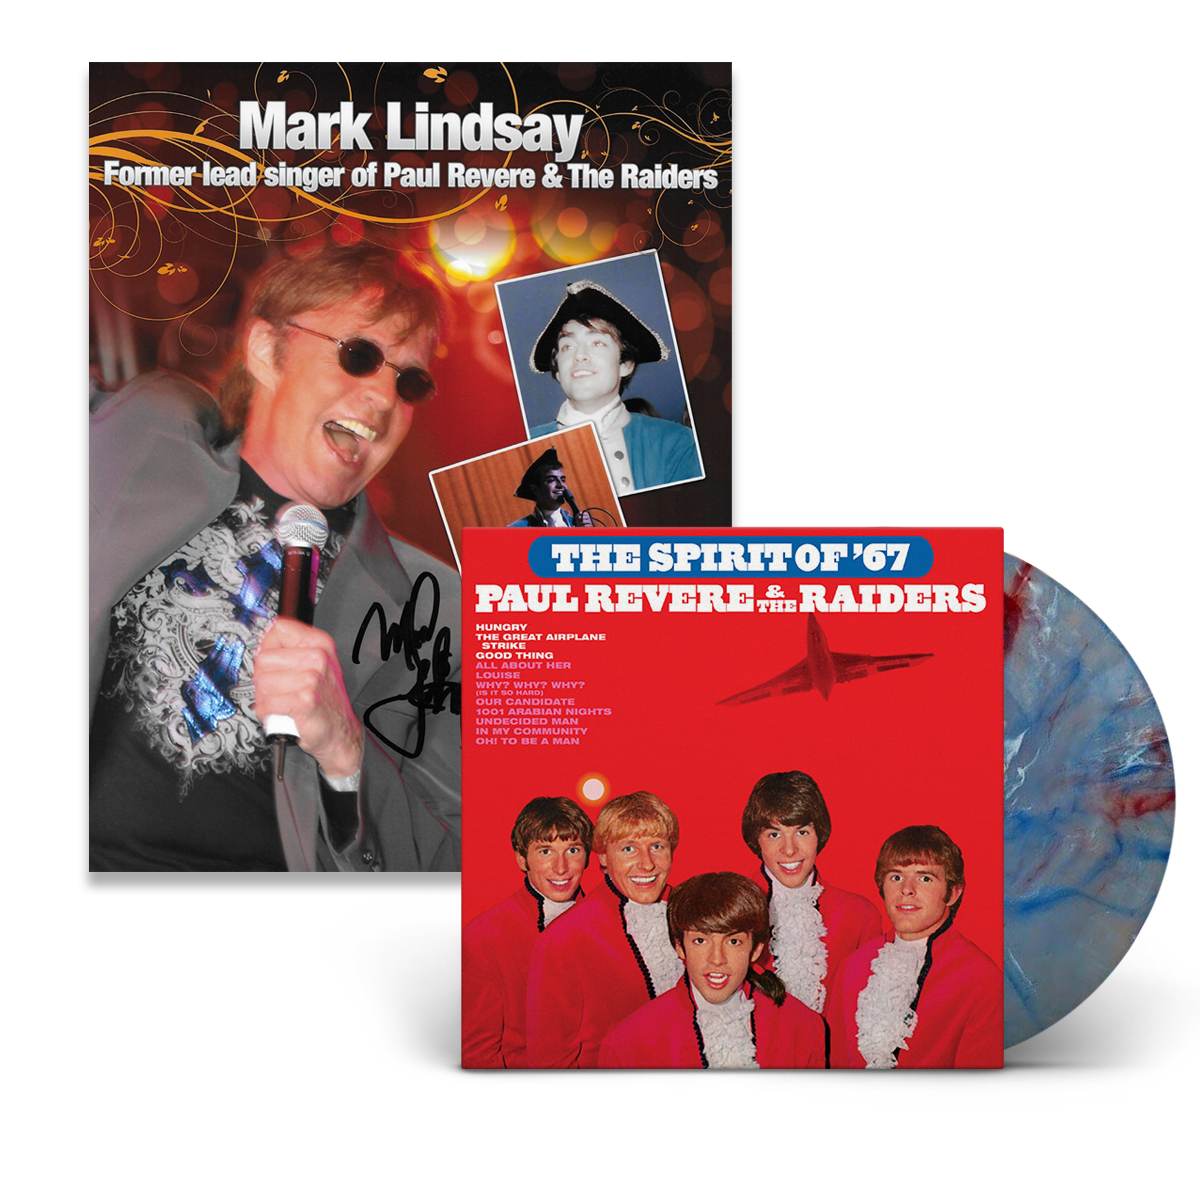 Paul Revere & The Raiders featuring Mark Lindsay - The Spirit of '67 (180 Gram Red White & Blue Swirl Audiophile Vinyl/Ltd. Edition/Gatefold Cover)